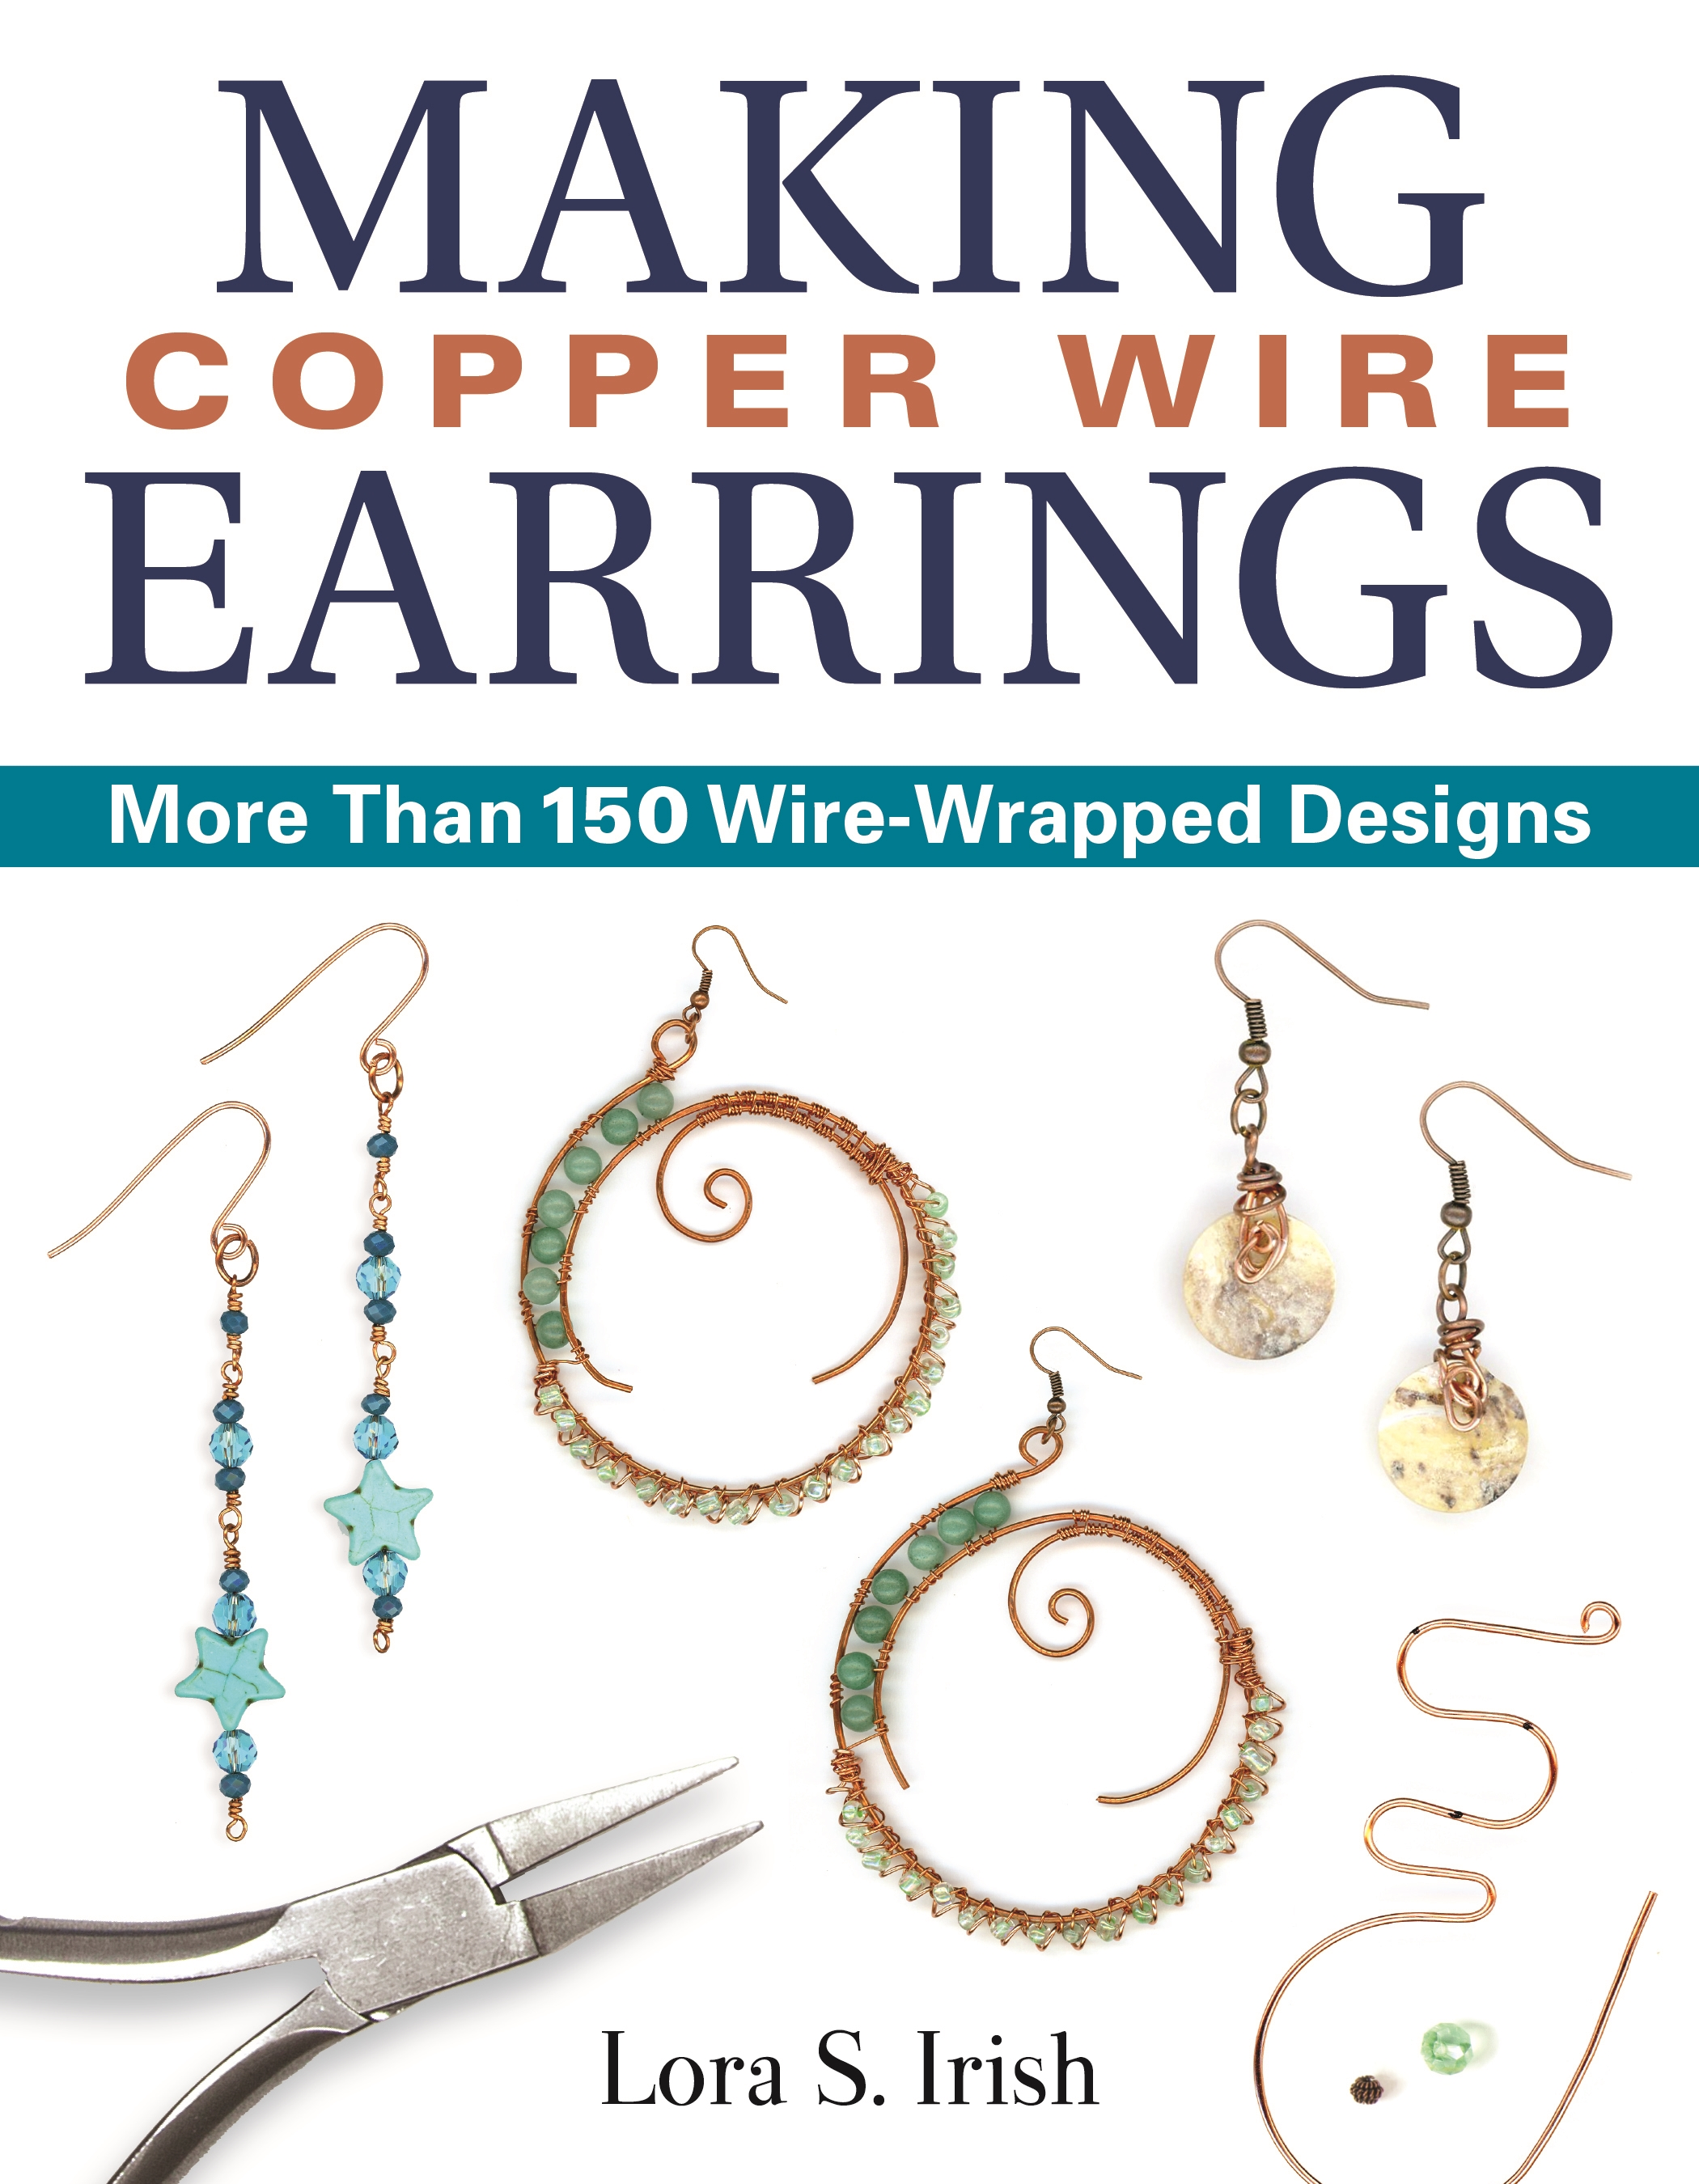 Making Copper Wire Earrings